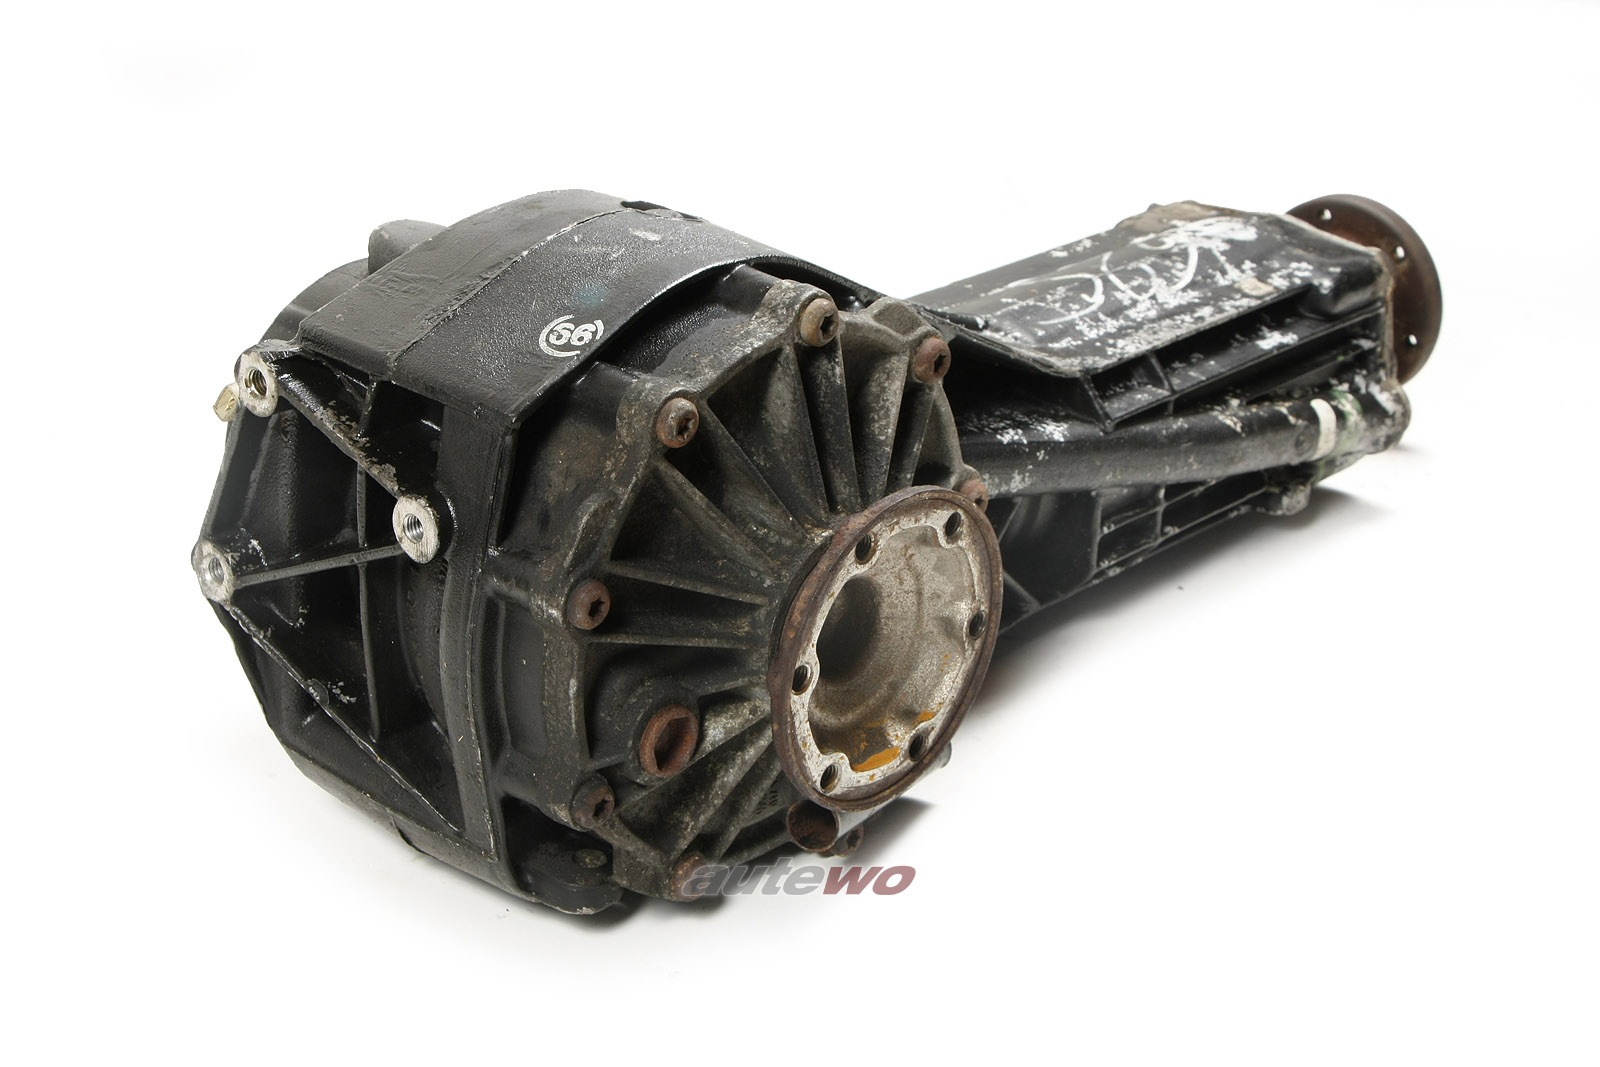 017500044C Audi 100/S4/S6 C4 2.2/2.8l Differential AET 11122